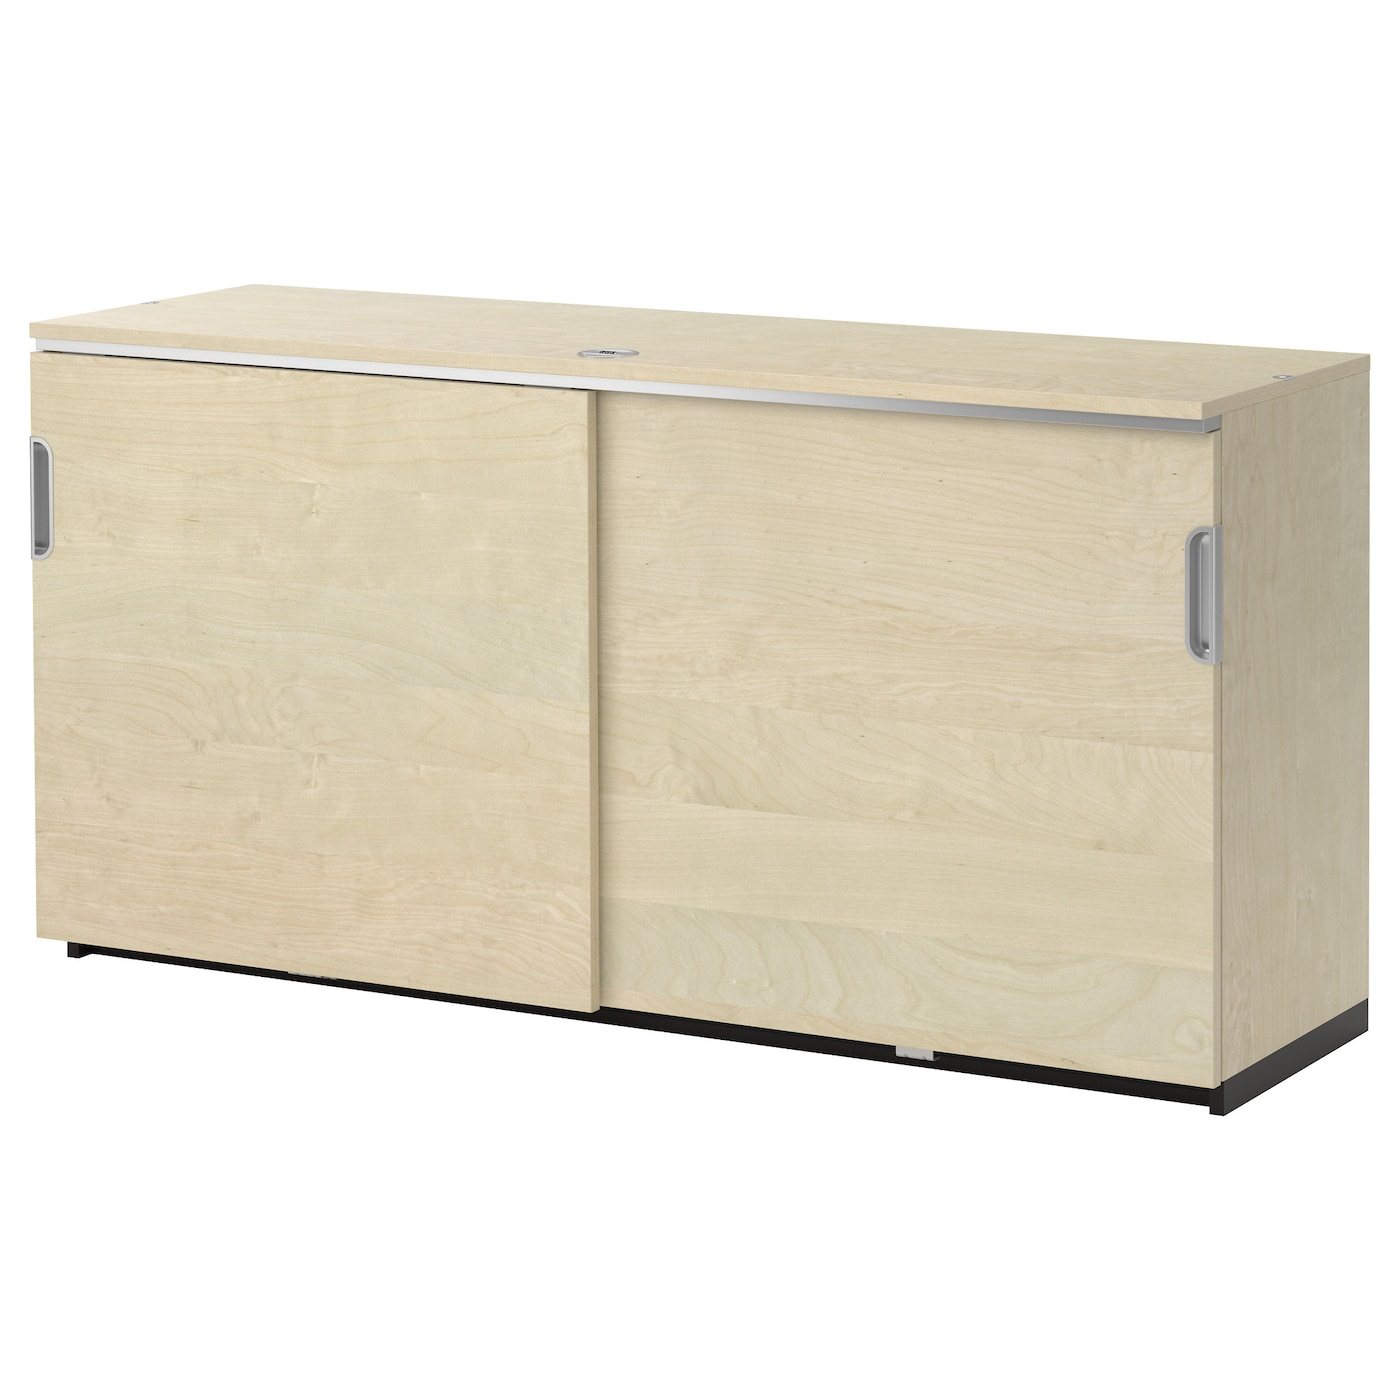 Office storage home office storage ikea for Sliding cupboard doors